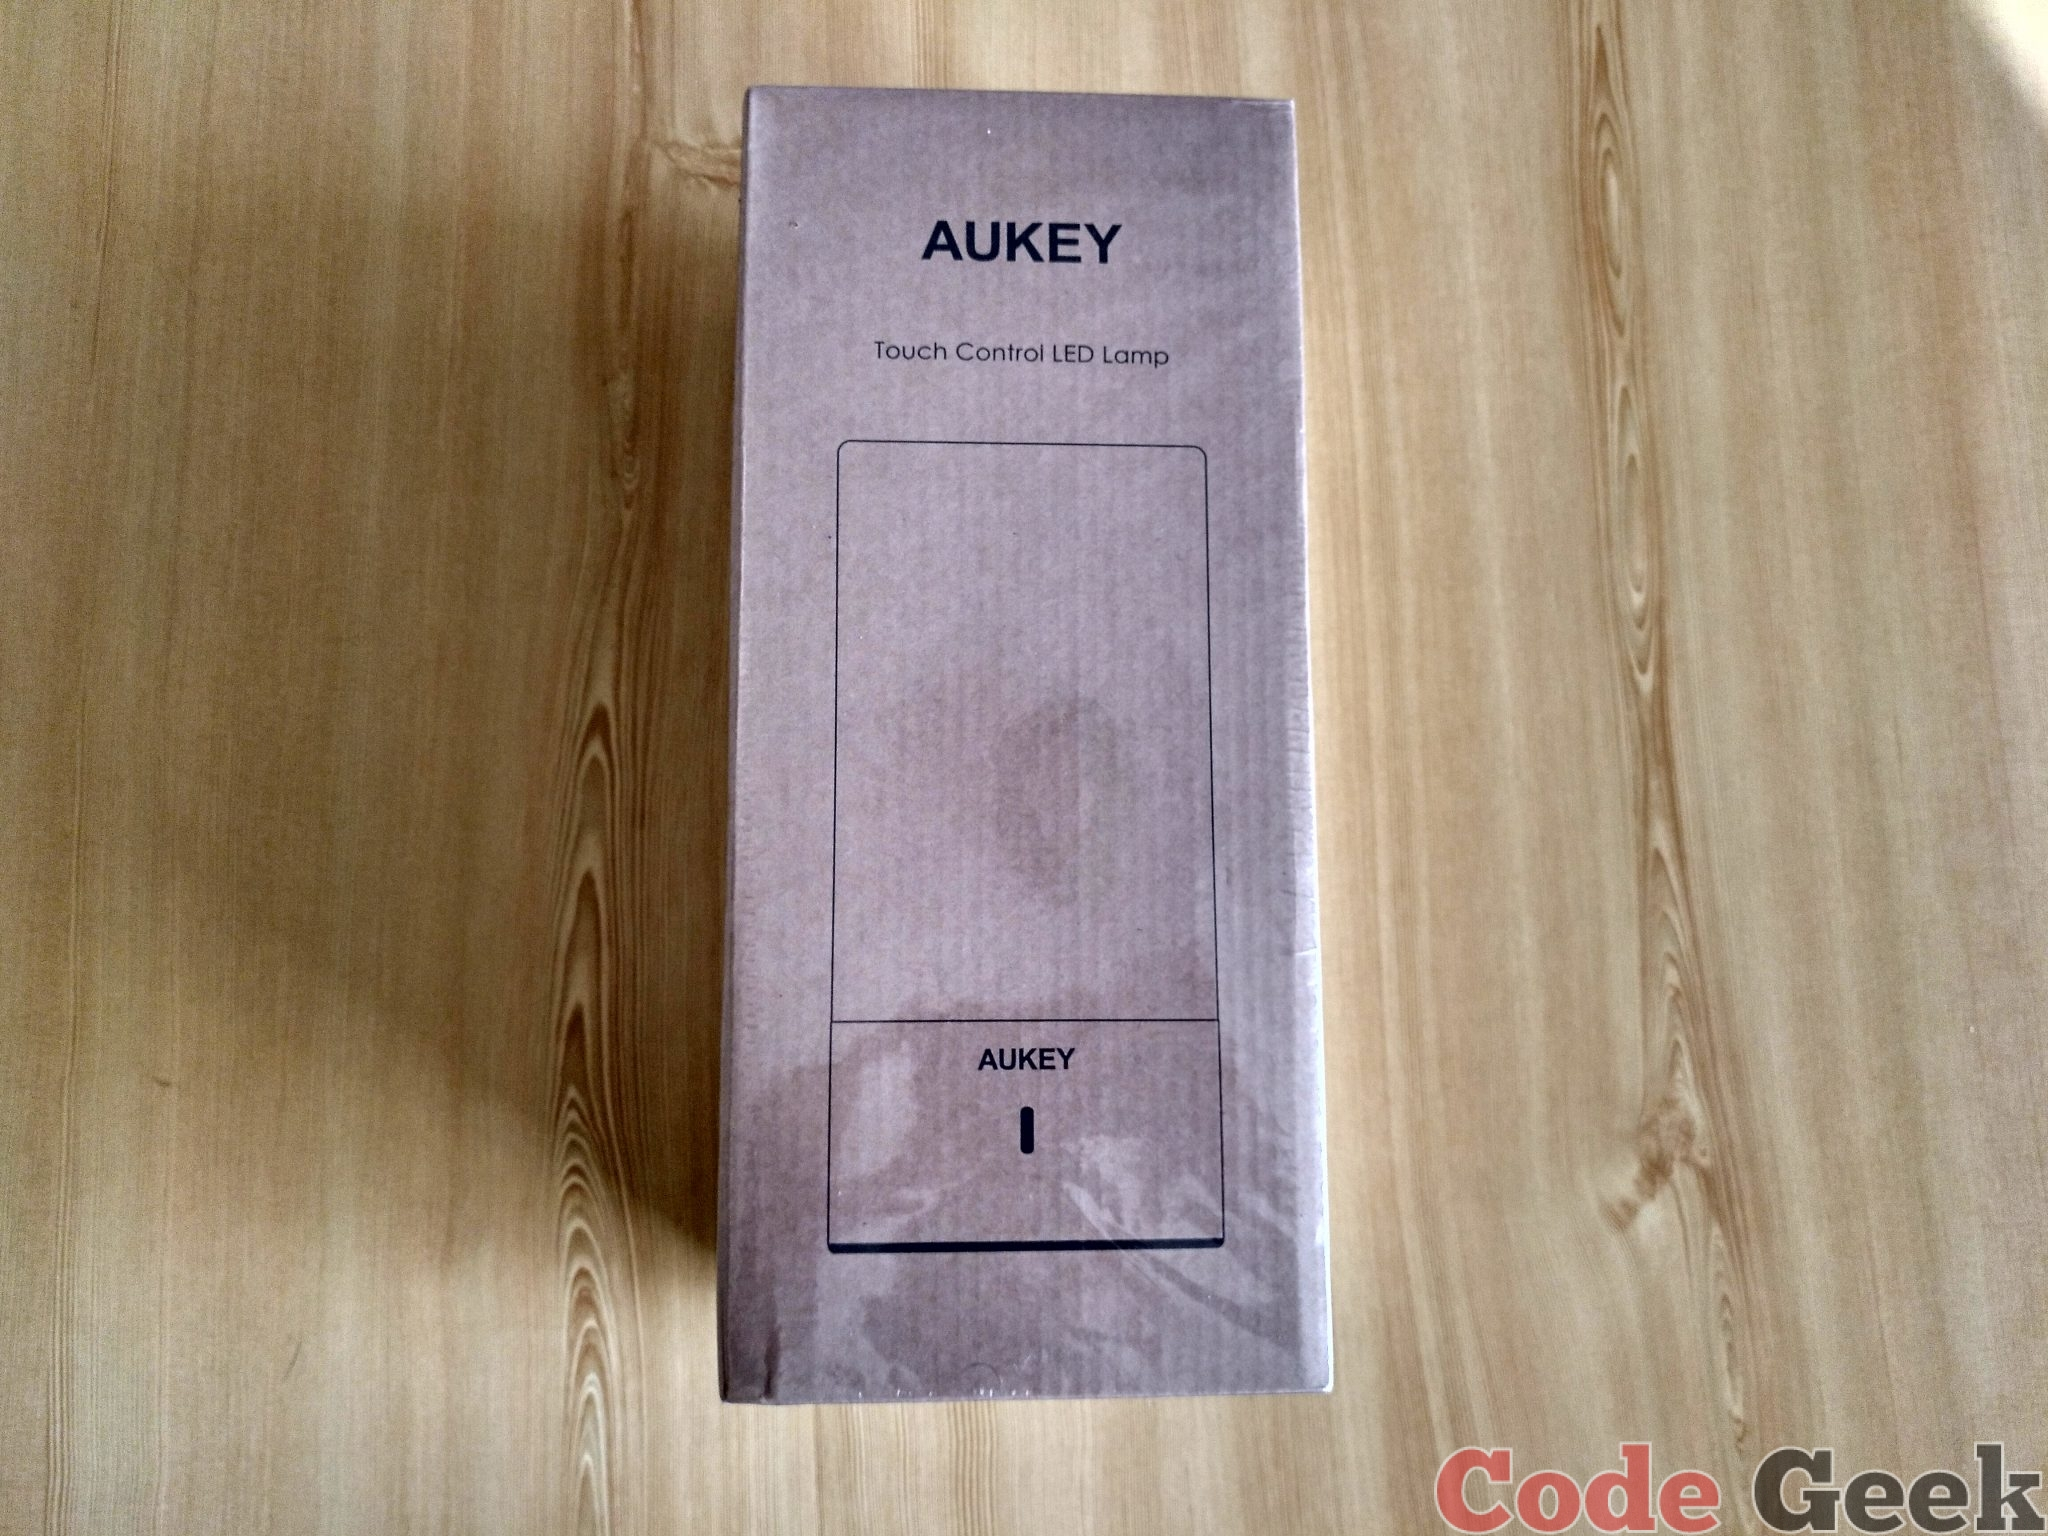 AUKEY Touch Control LED Lamp Review en Español